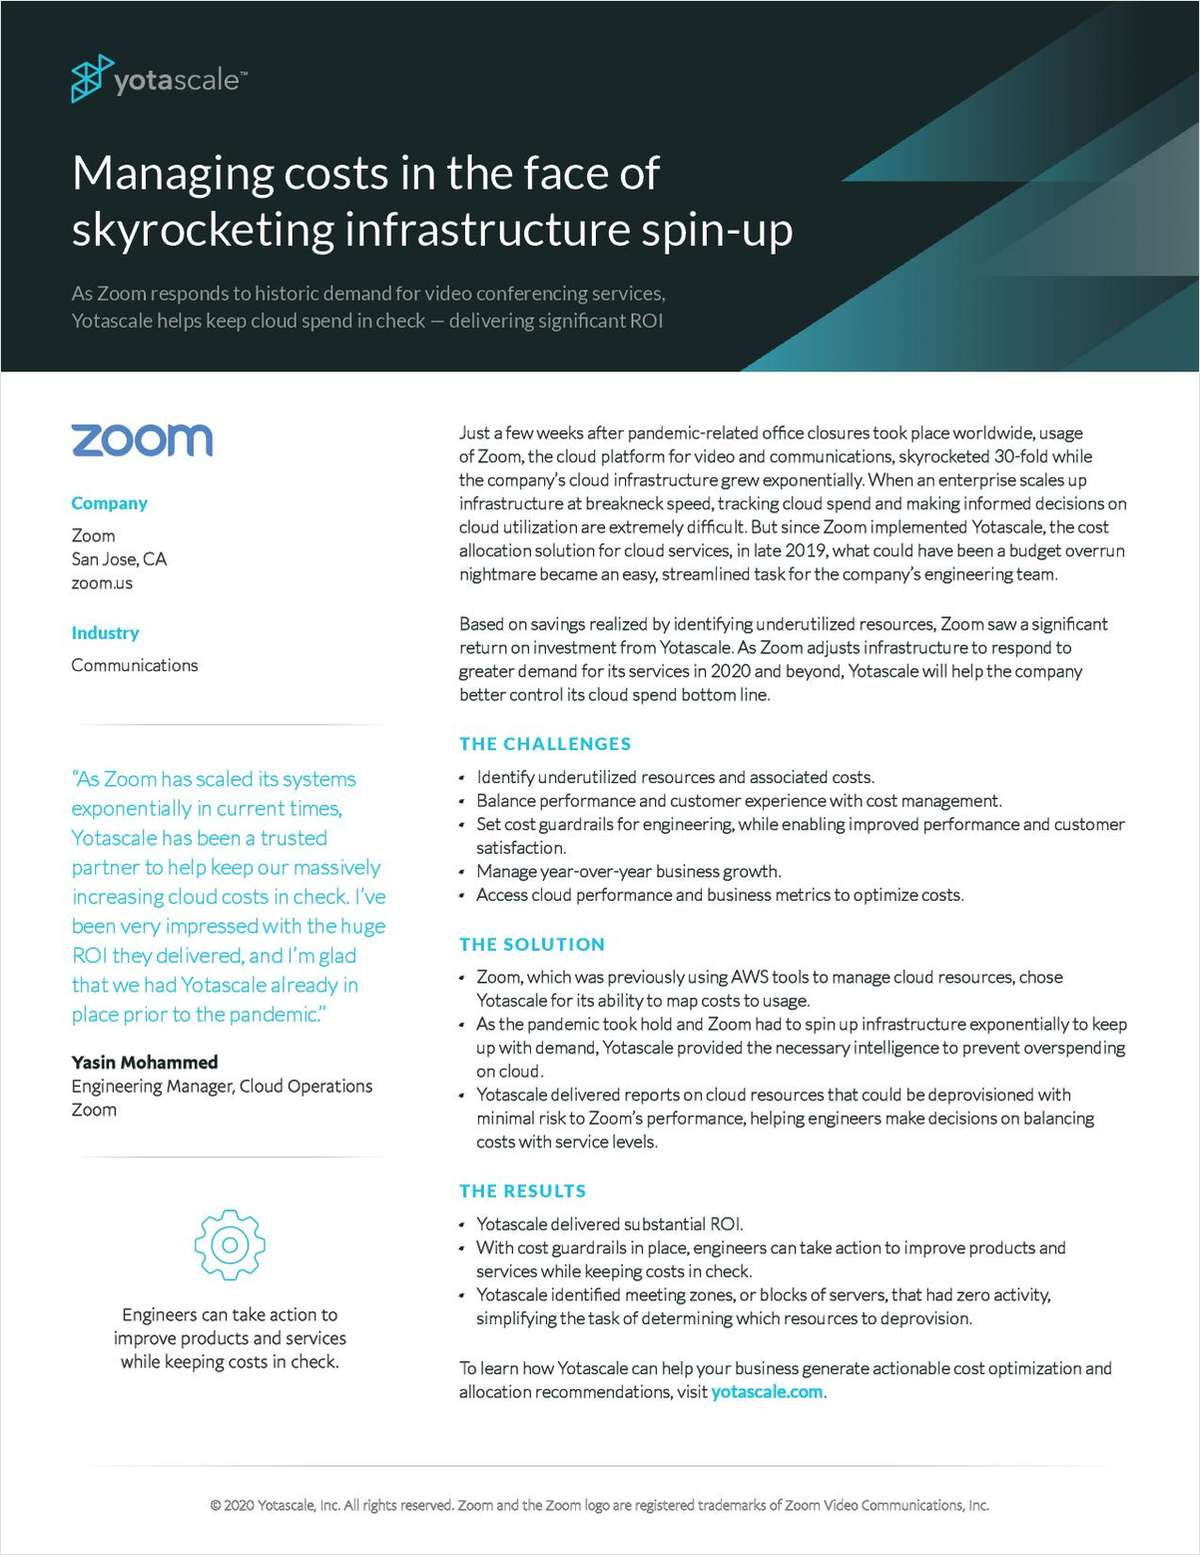 Managing Costs In The Face Of Skyrocketing Infrastructure Spin-Up